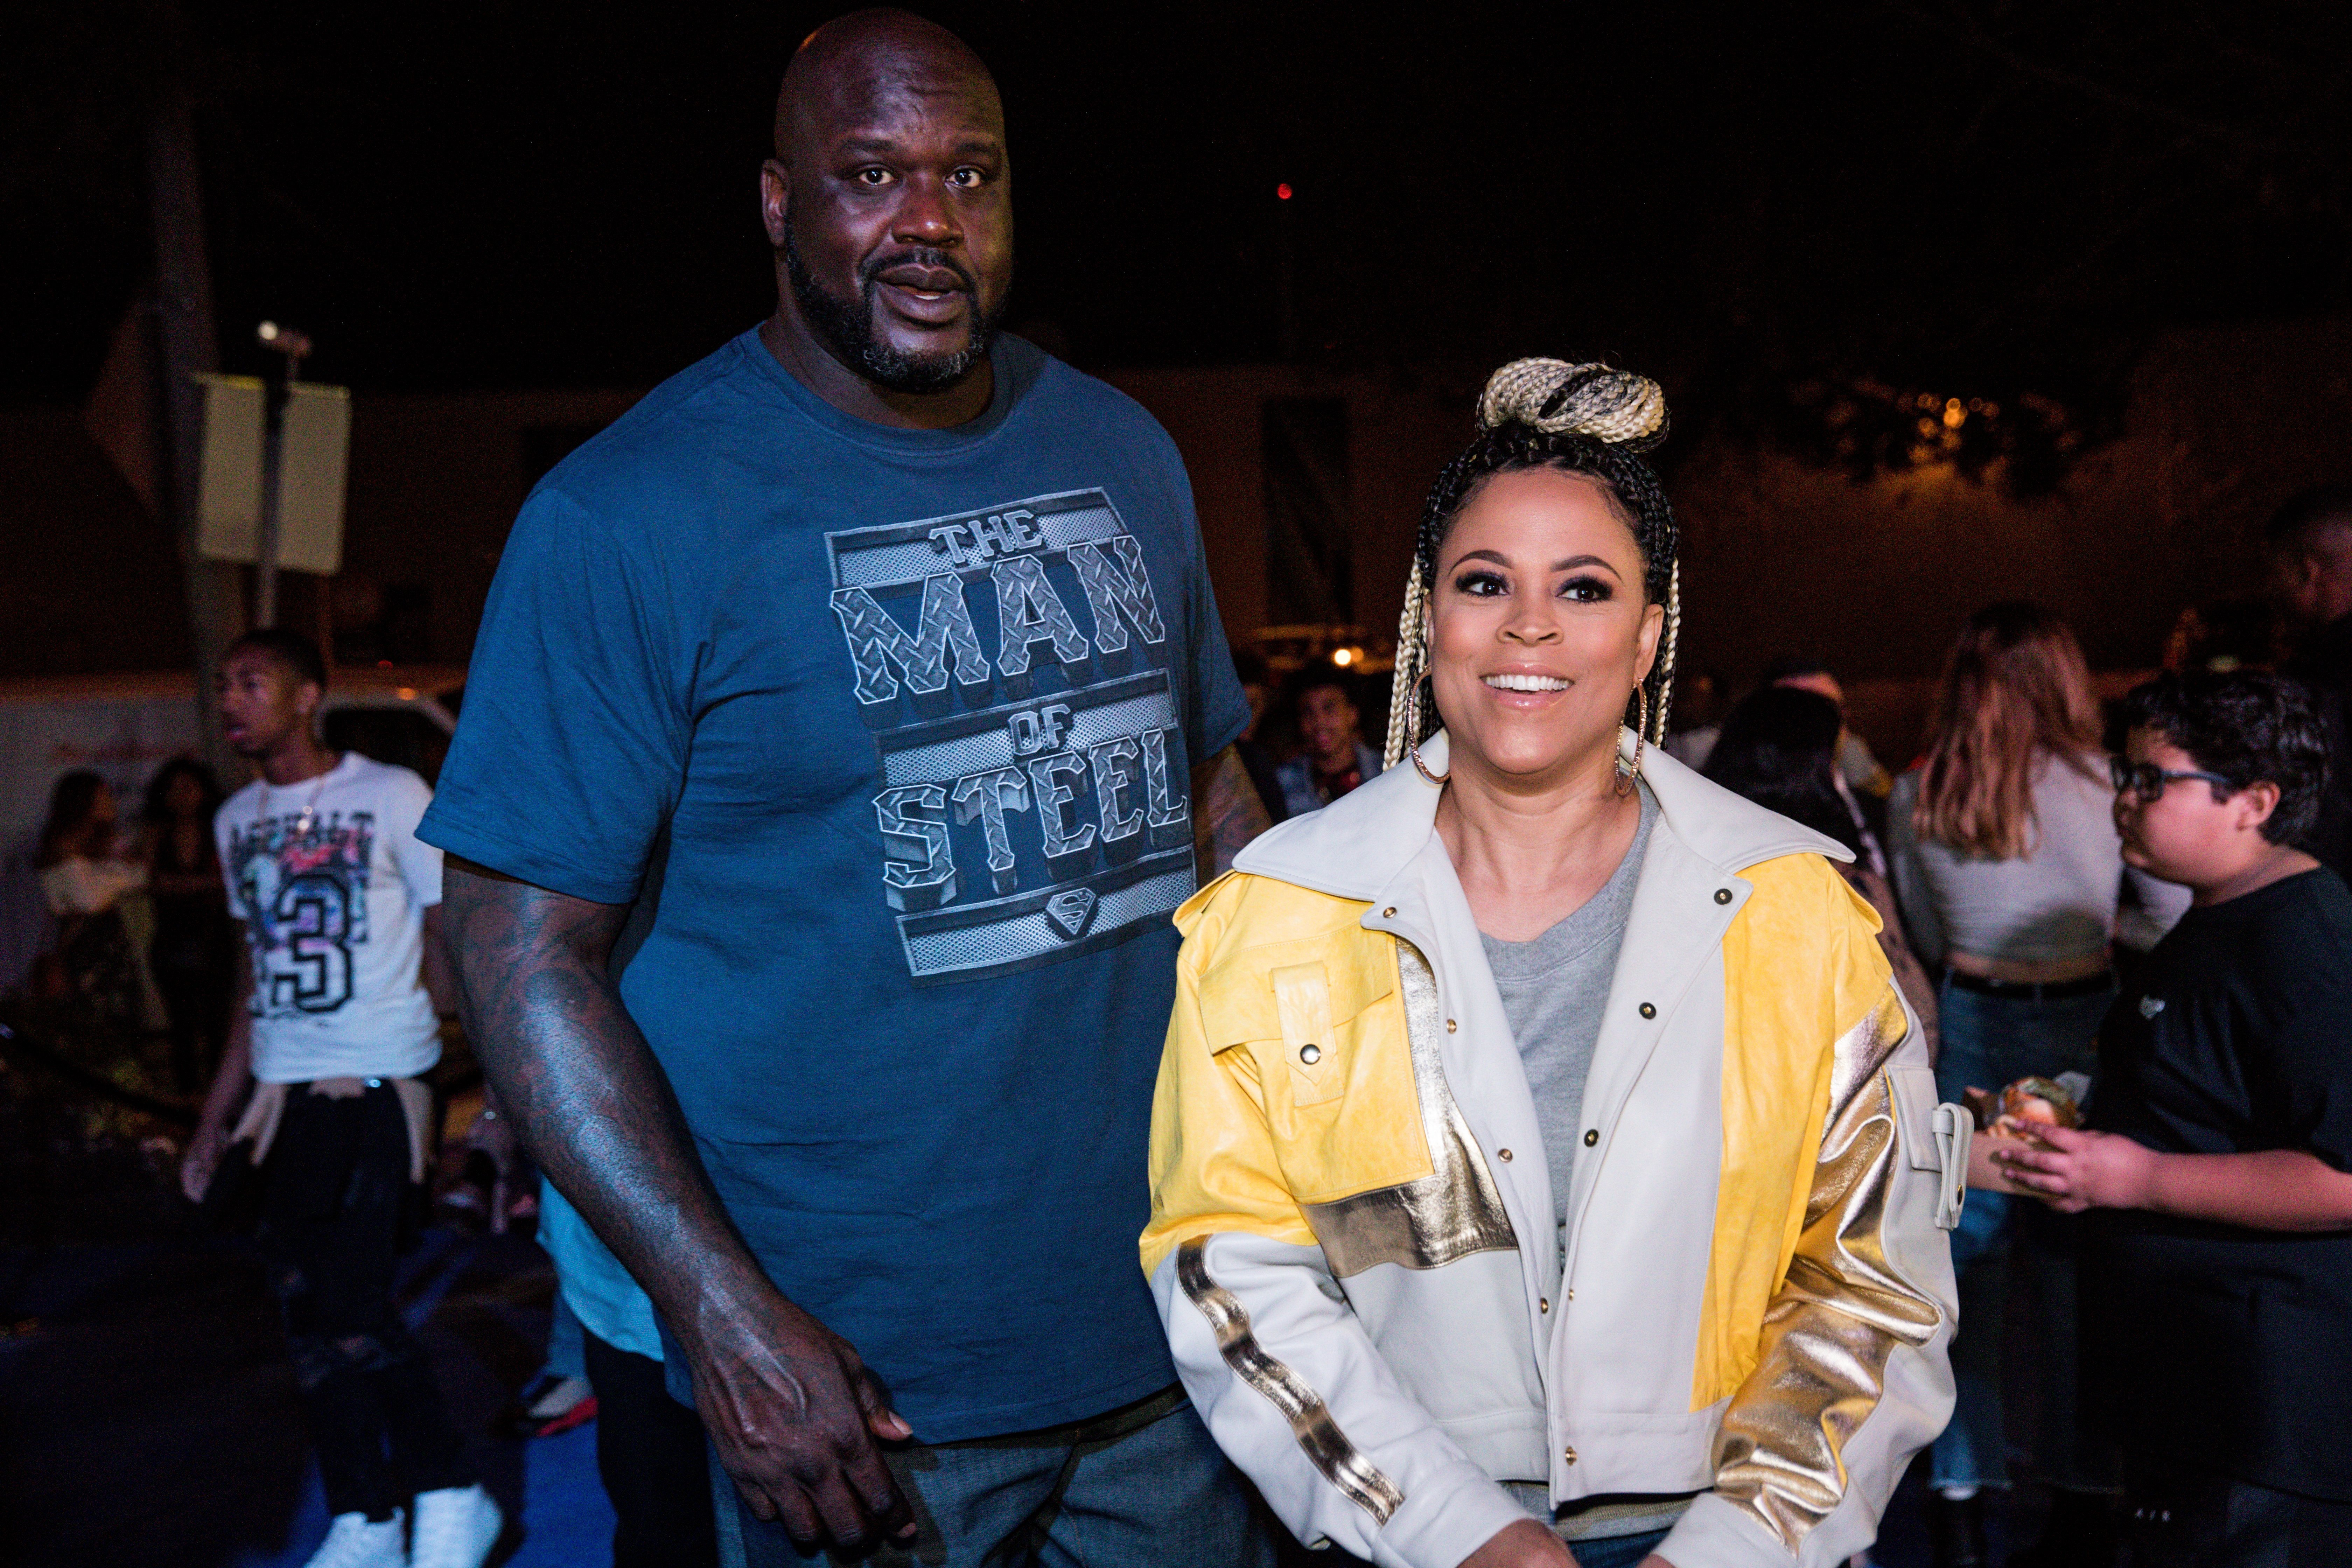 Shaunie O'Neal and Shaquille O'Neal celebrate Shareef O'Neal's 18th birthday party at West Coast Customs on January 13, 2018 | Photo: GettyImages